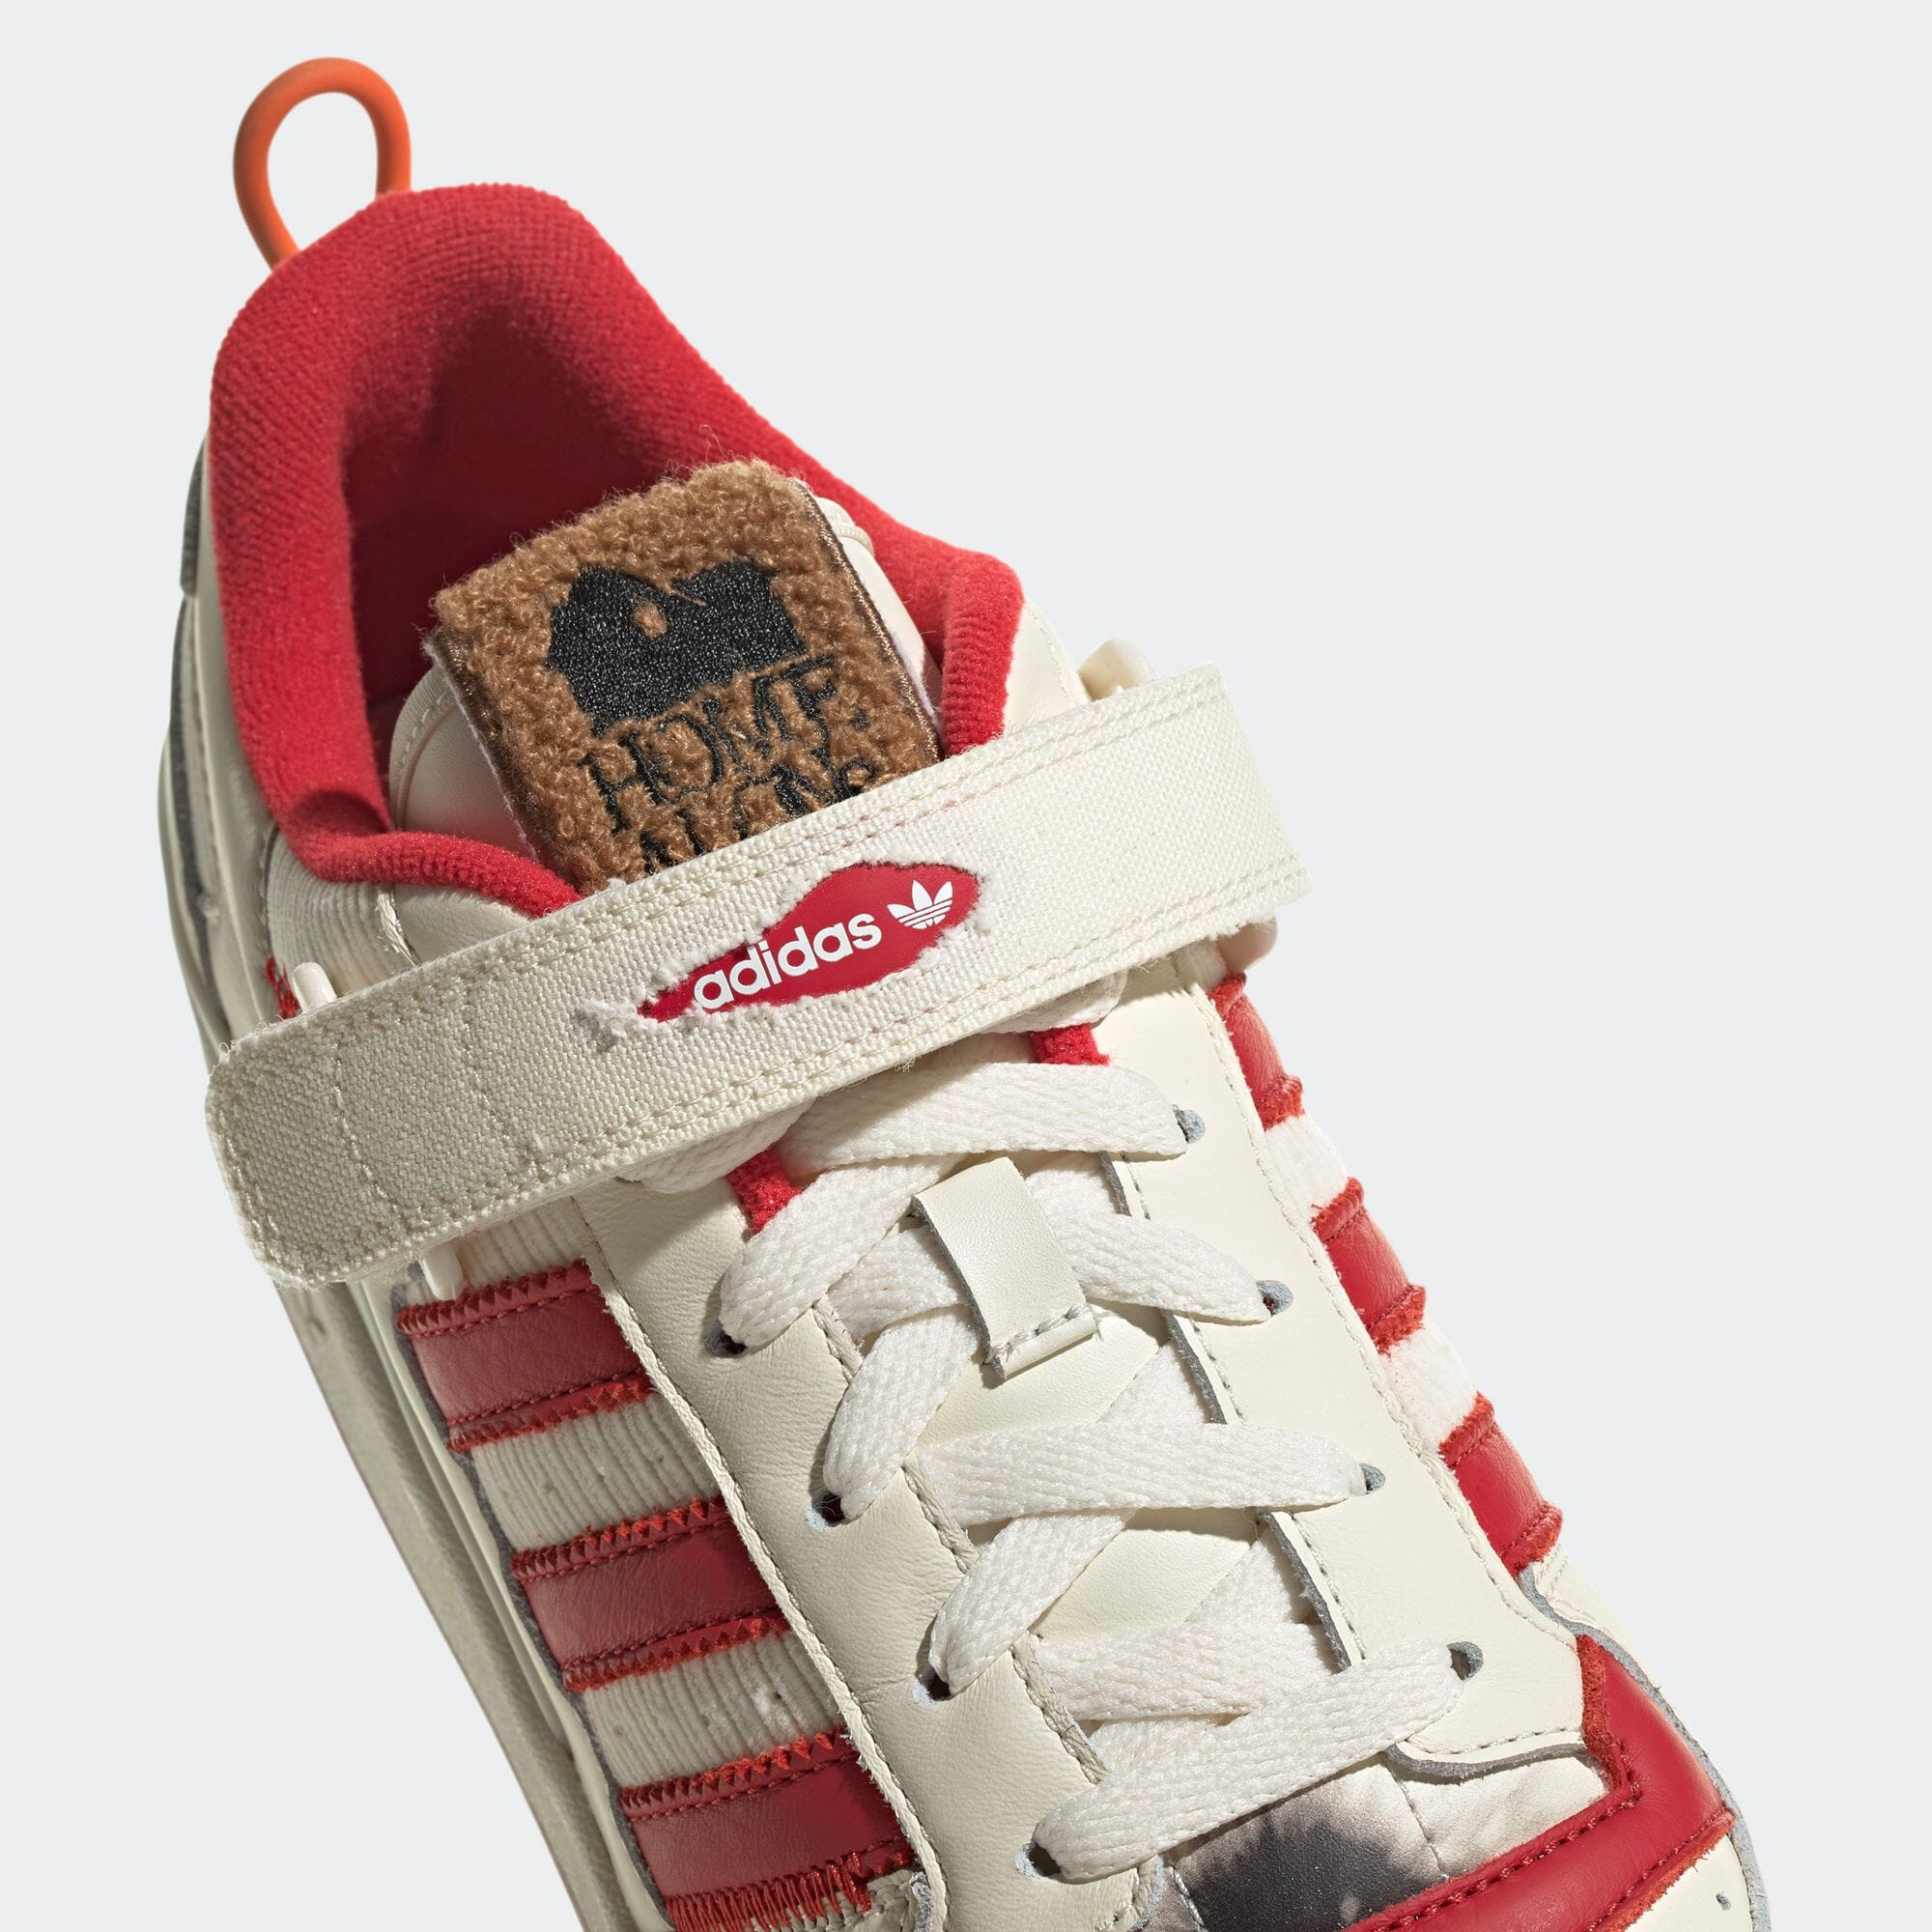 Home Alone x Adidas Forum Low GZ4378 Tongue